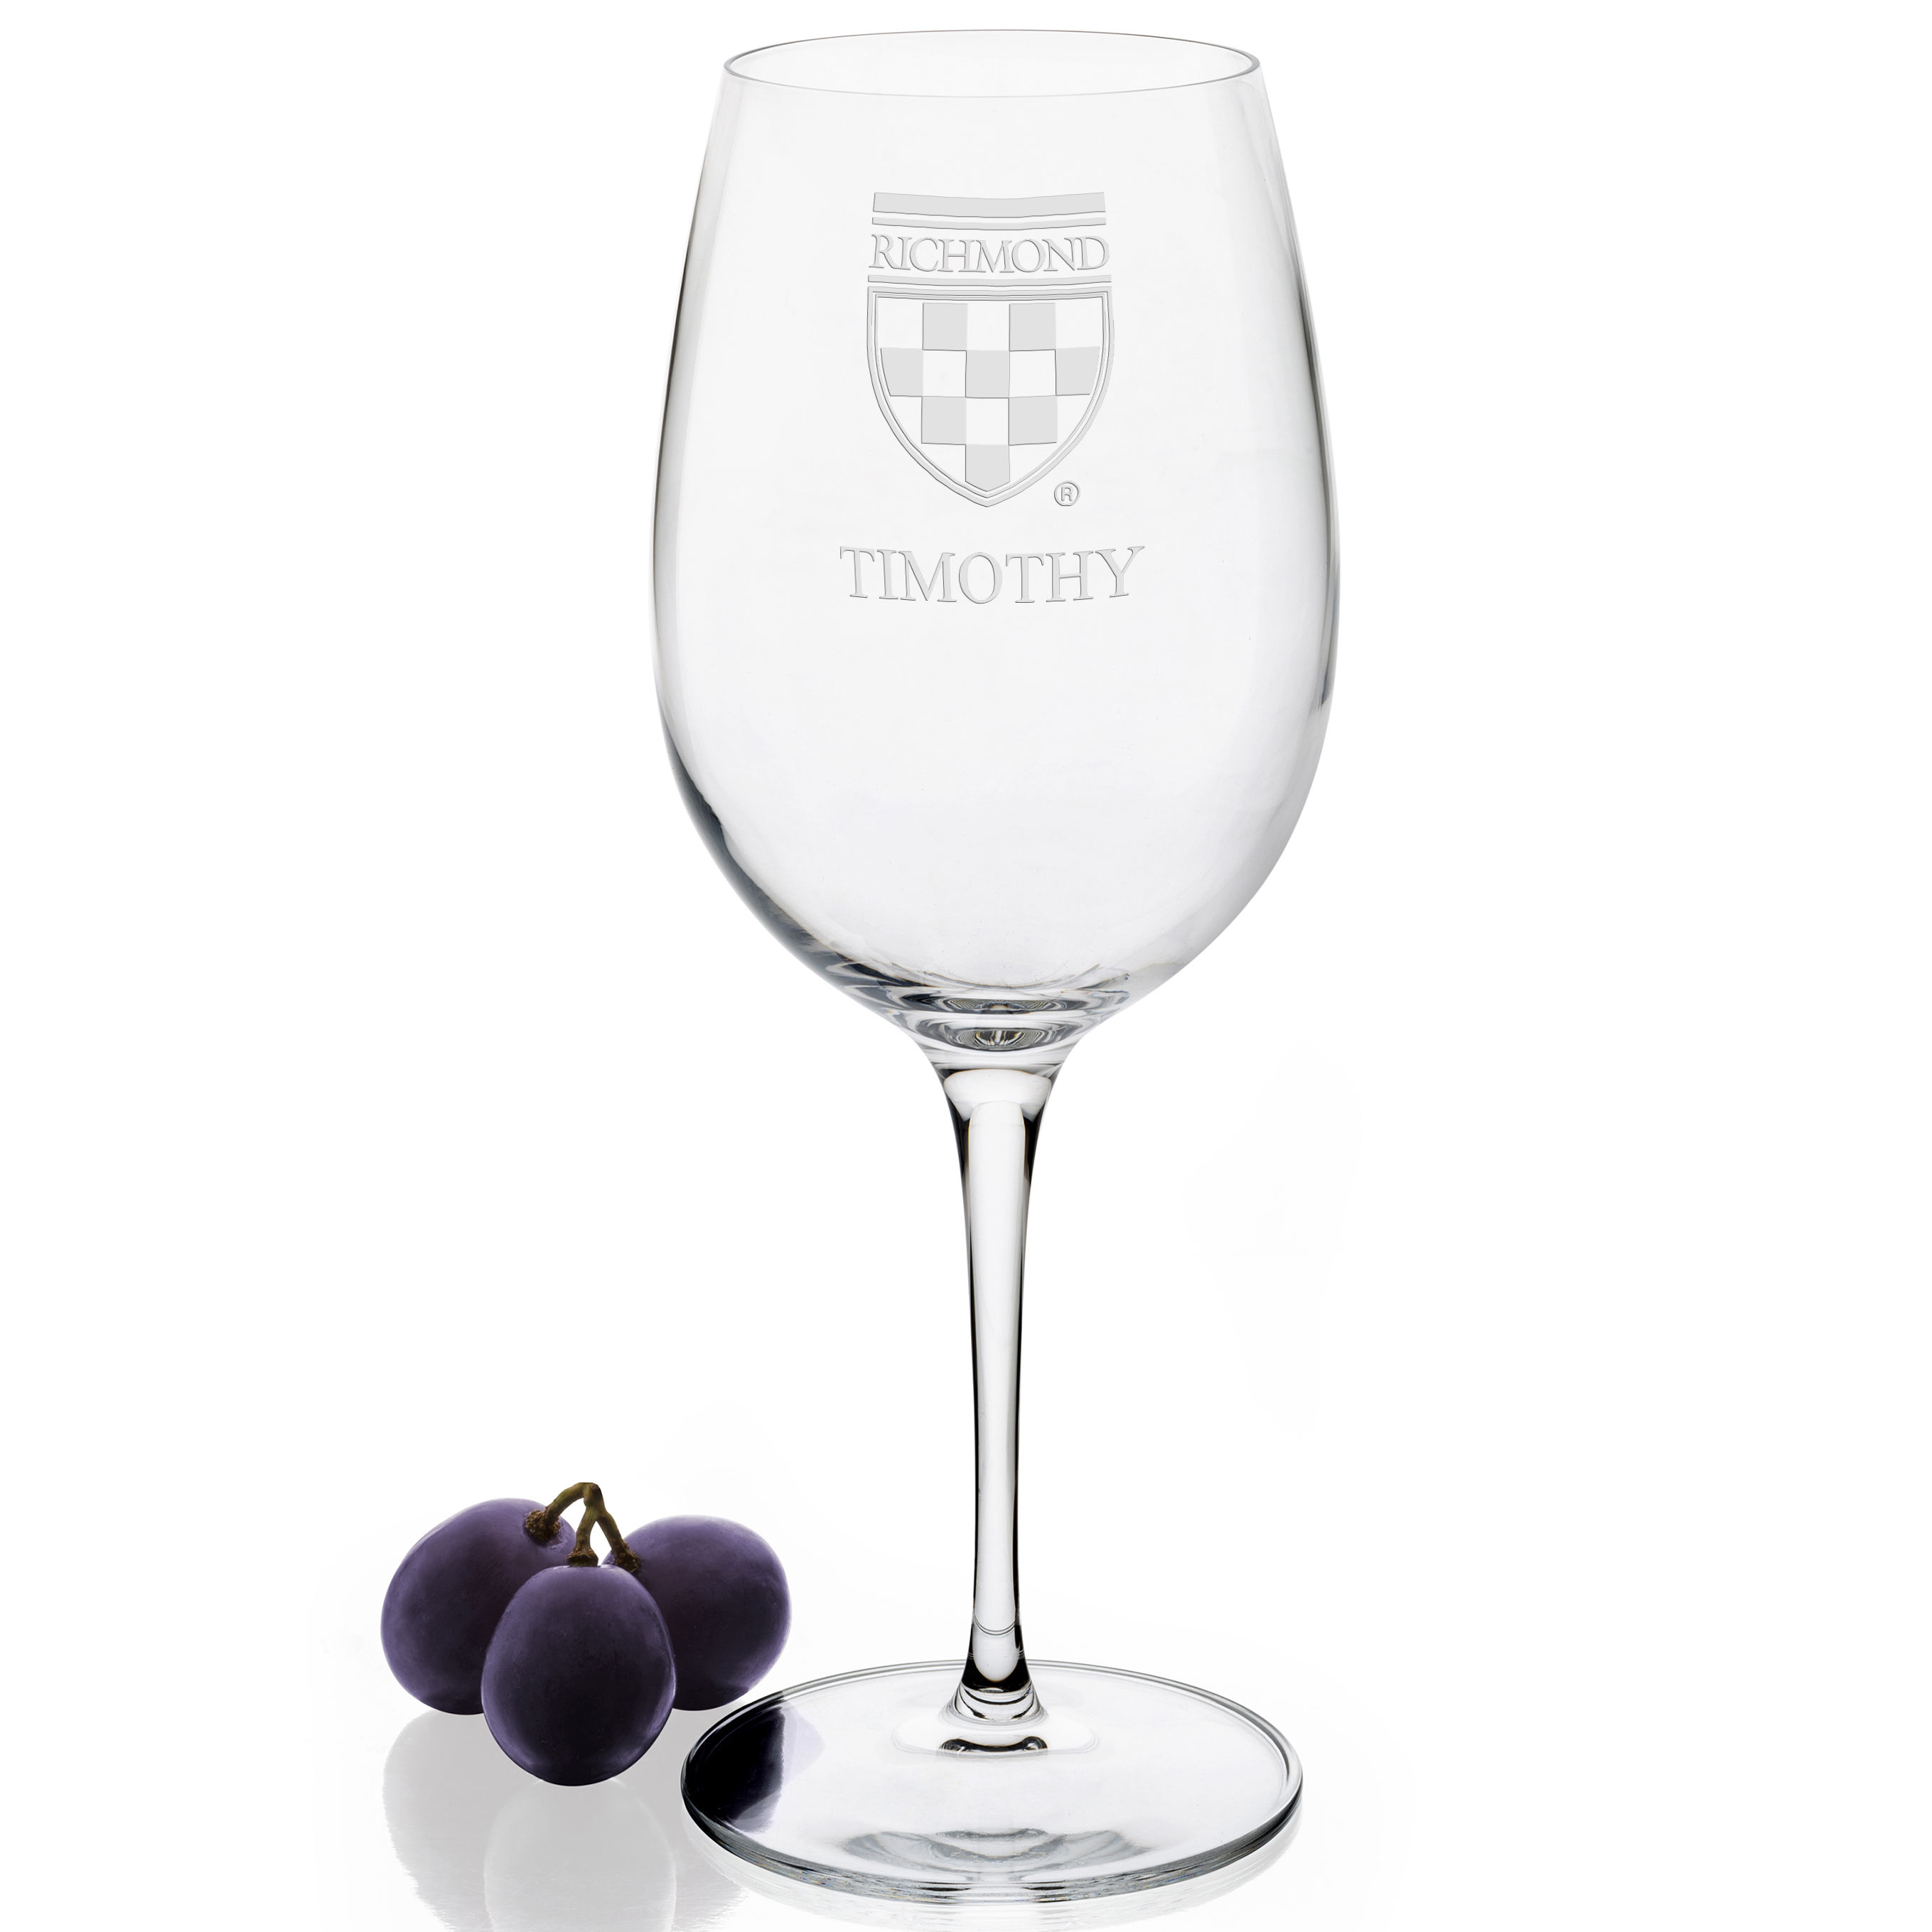 University of Richmond Red Wine Glasses - Set of 4 - Image 2